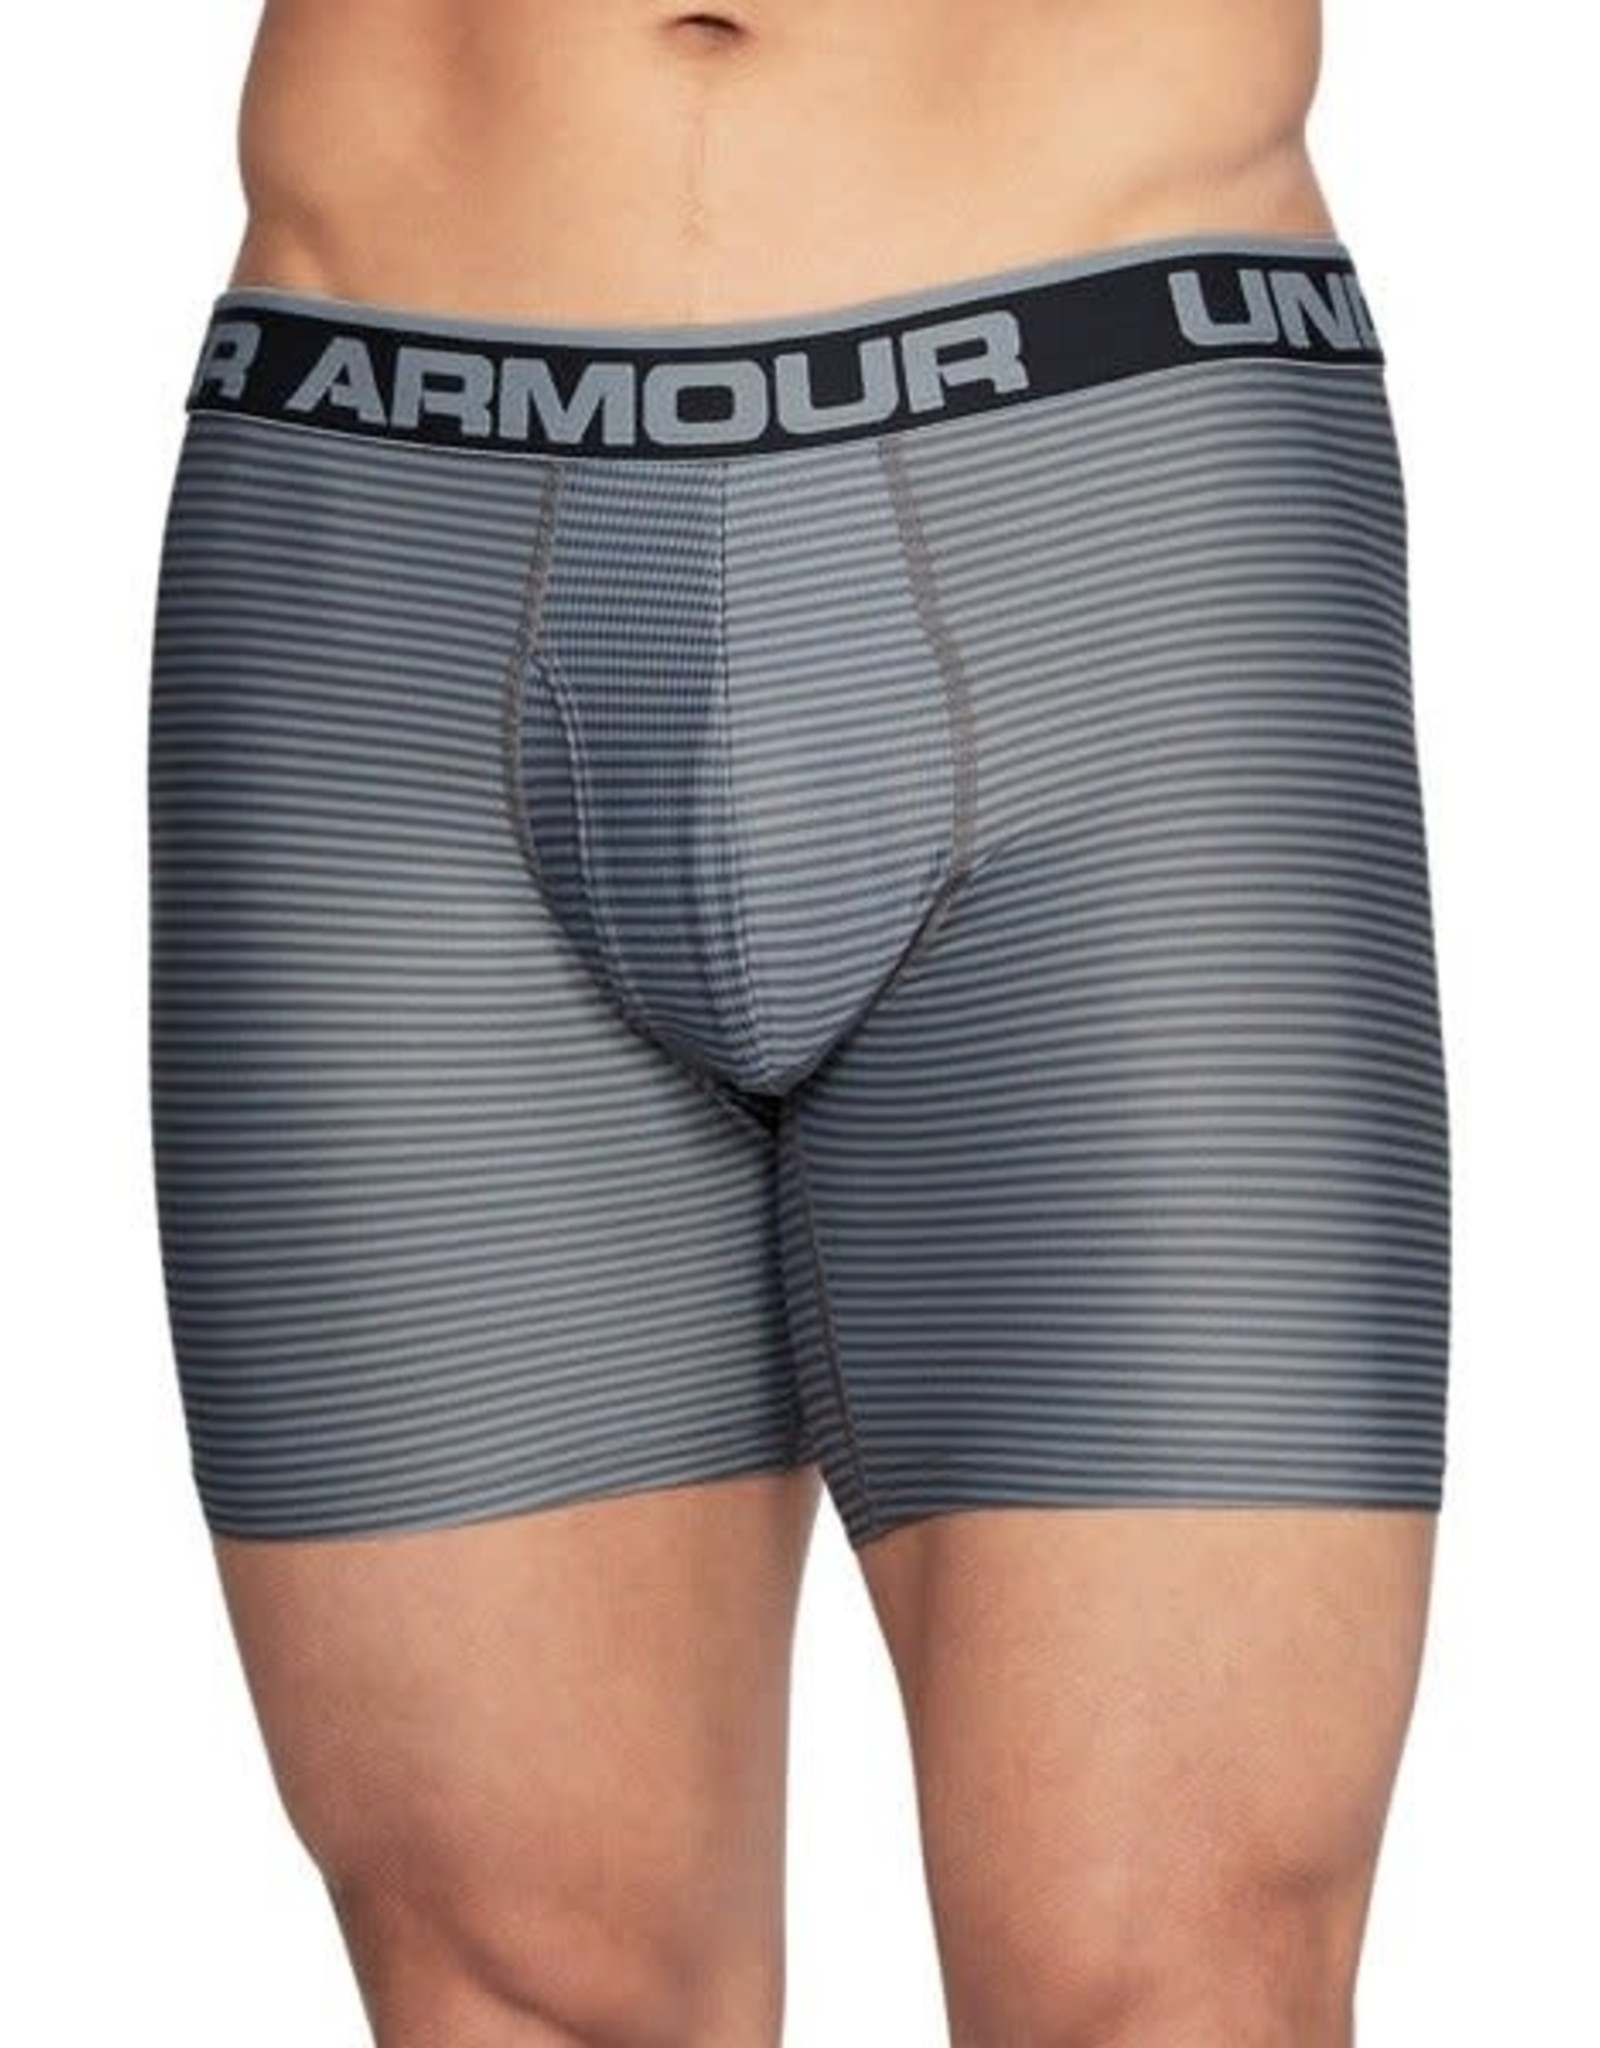 Under Armour O-series 6inch Boxerjock 2 Pack novelty -  black